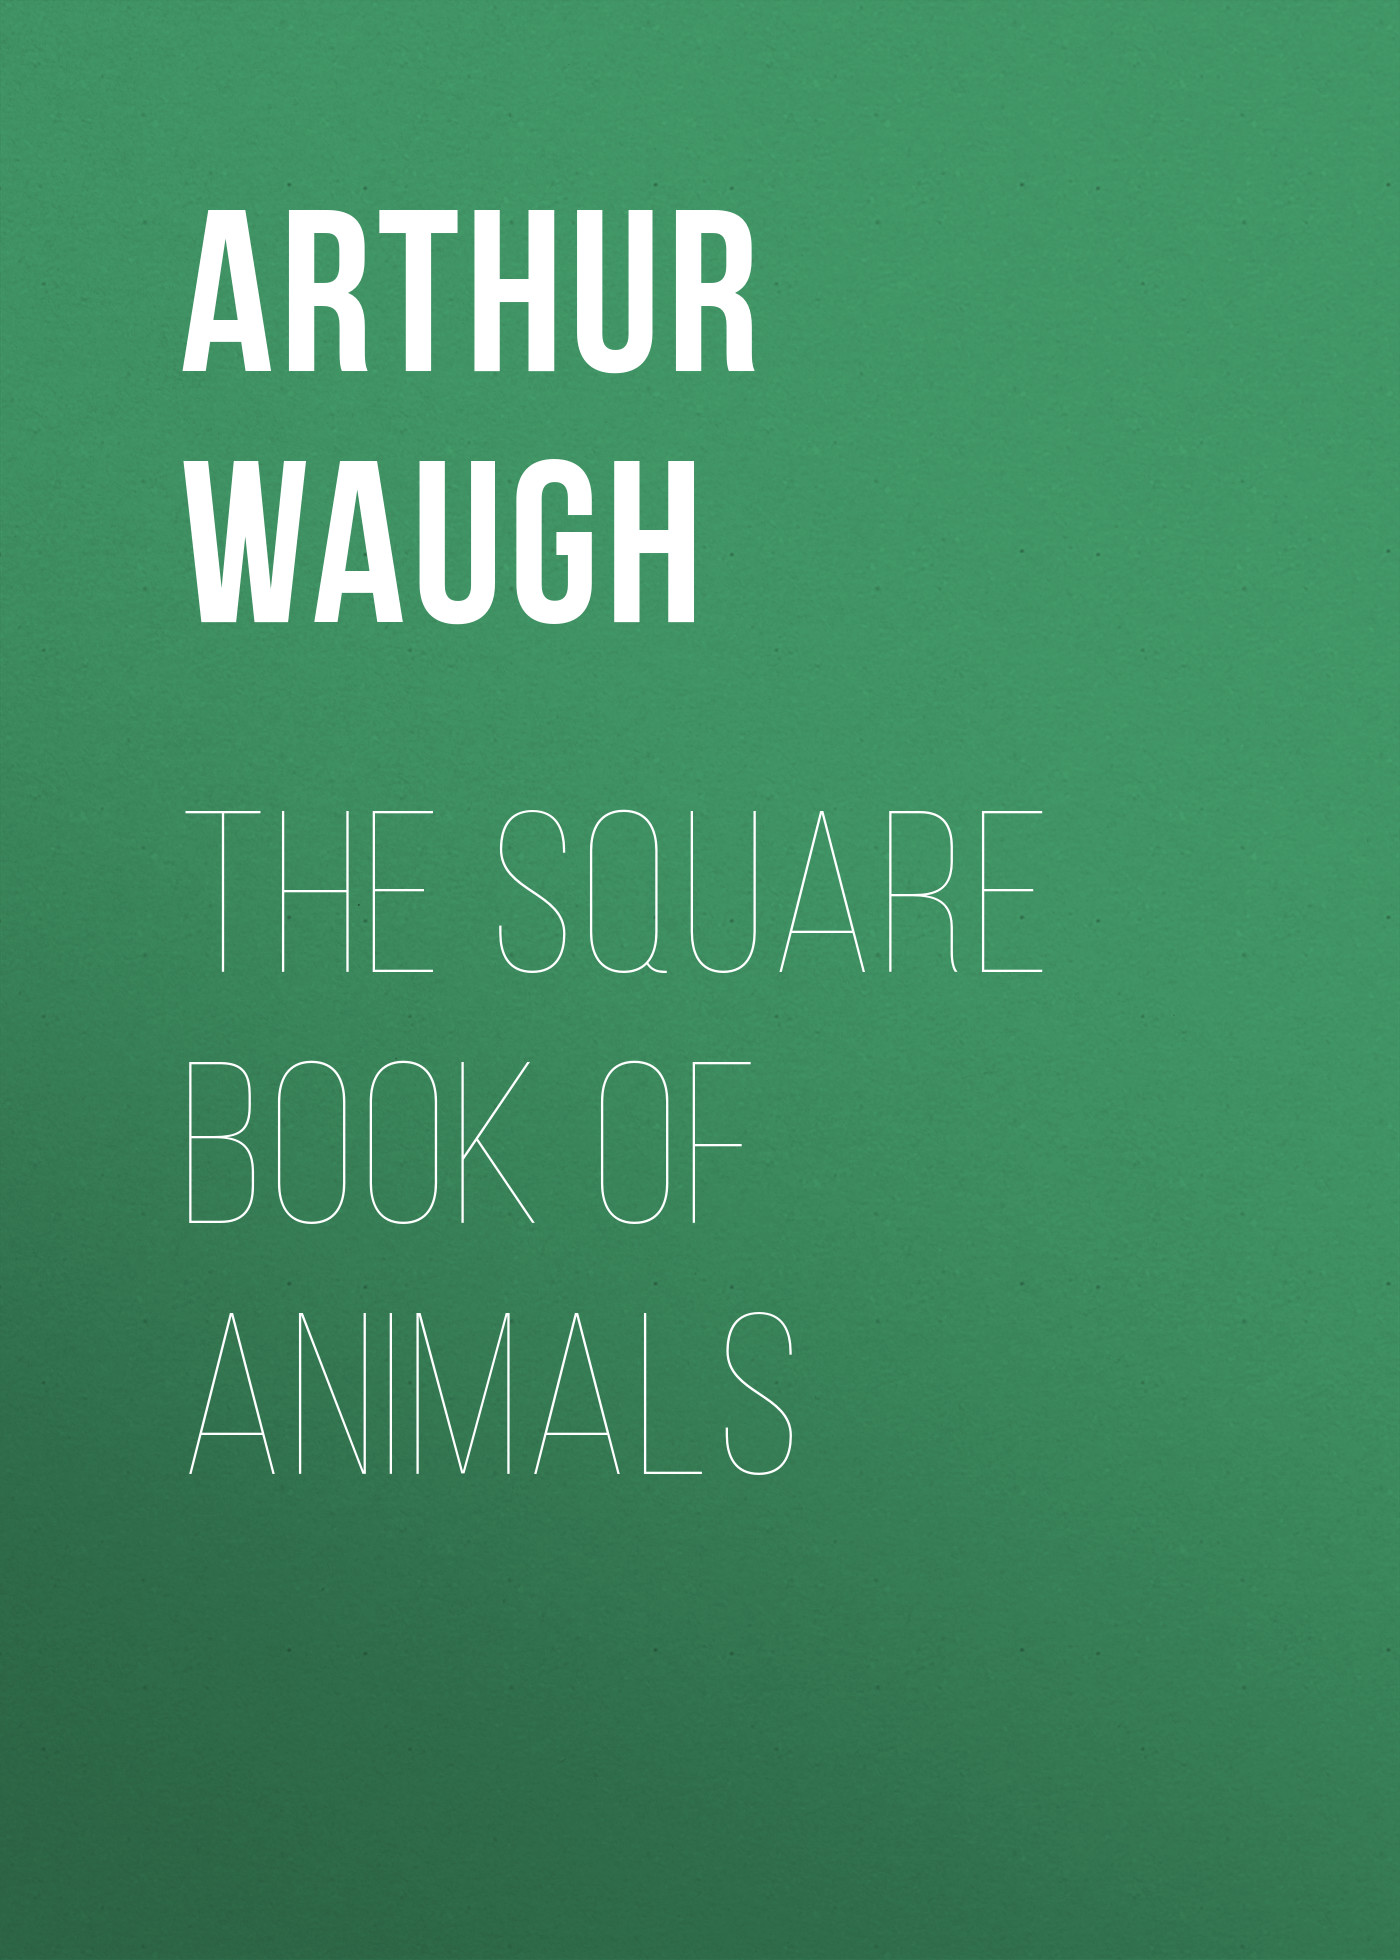 цены на Arthur Waugh The Square Book of Animals